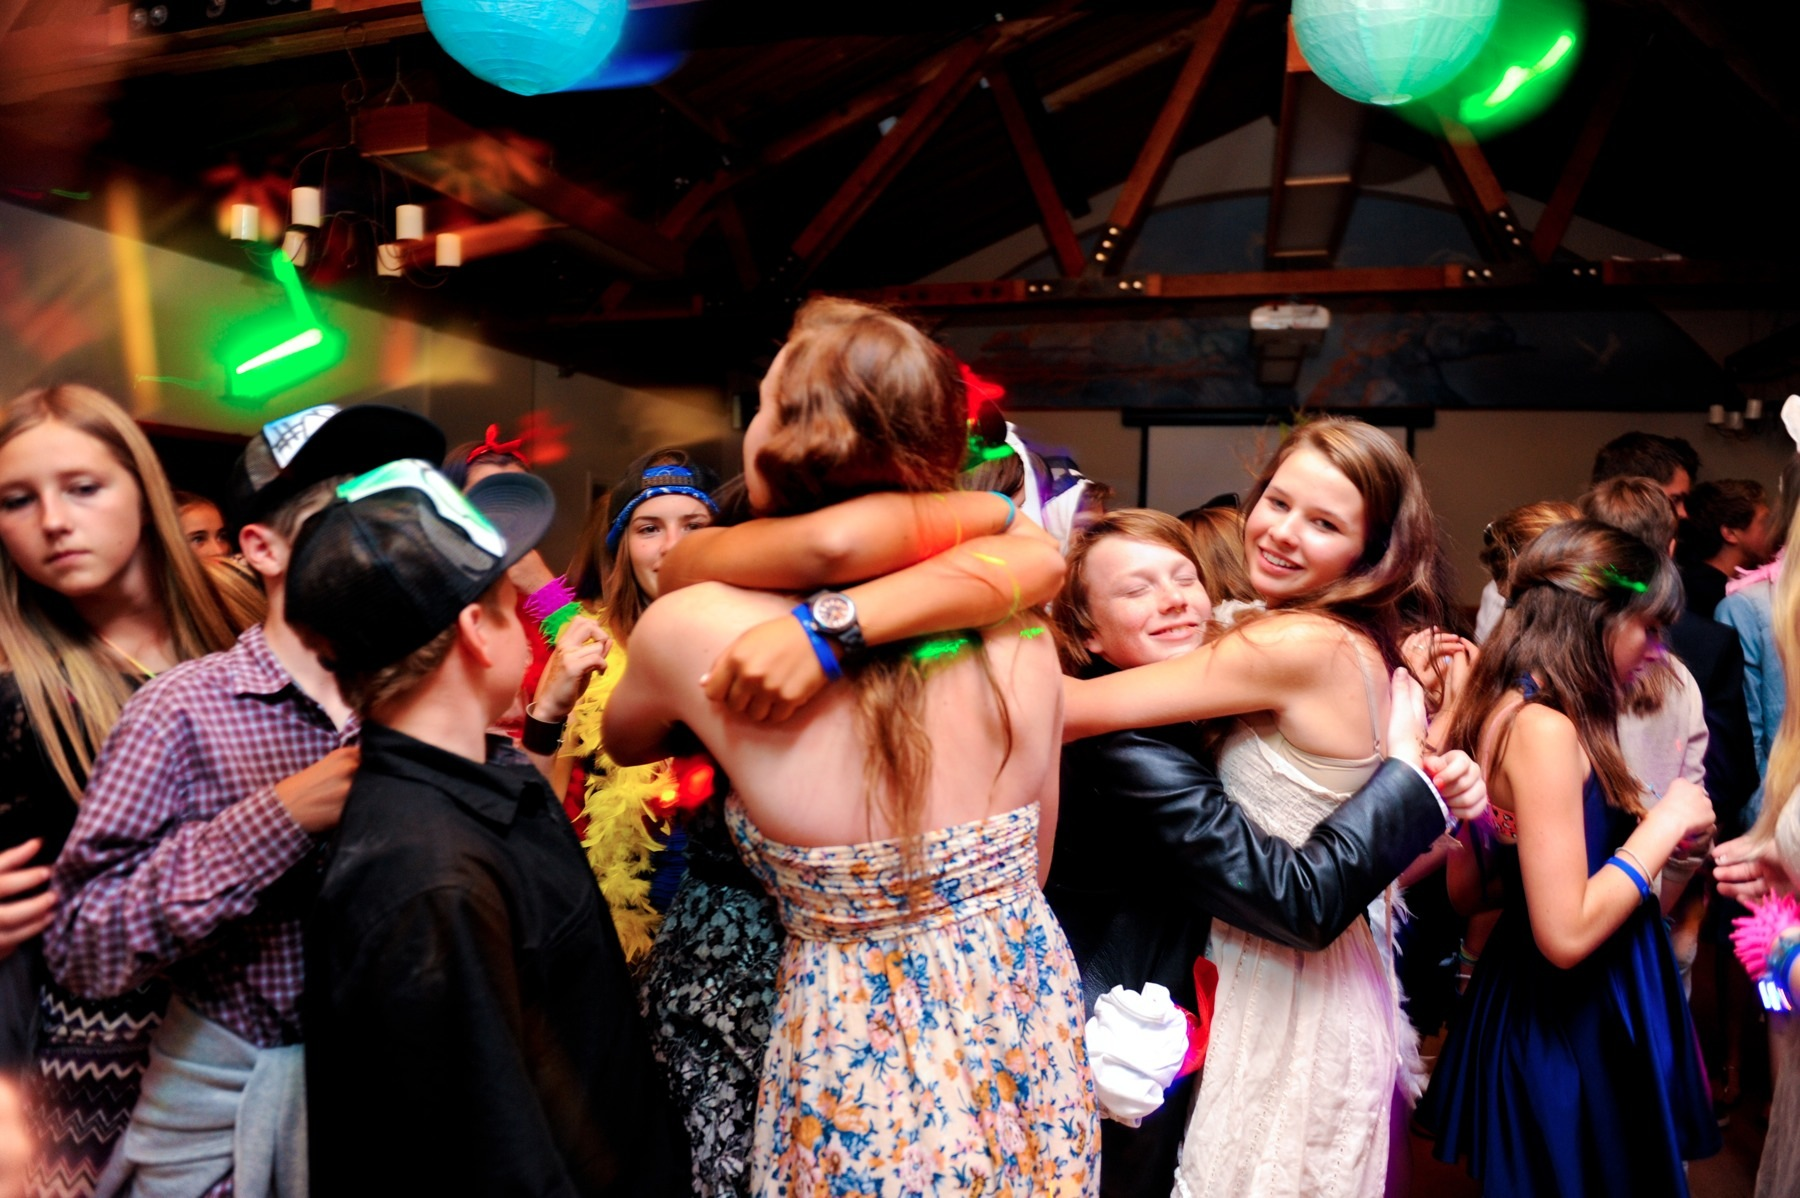 East Bay Mitzvah and Jewish Event Photography and Creative Mitzvah Party idea images